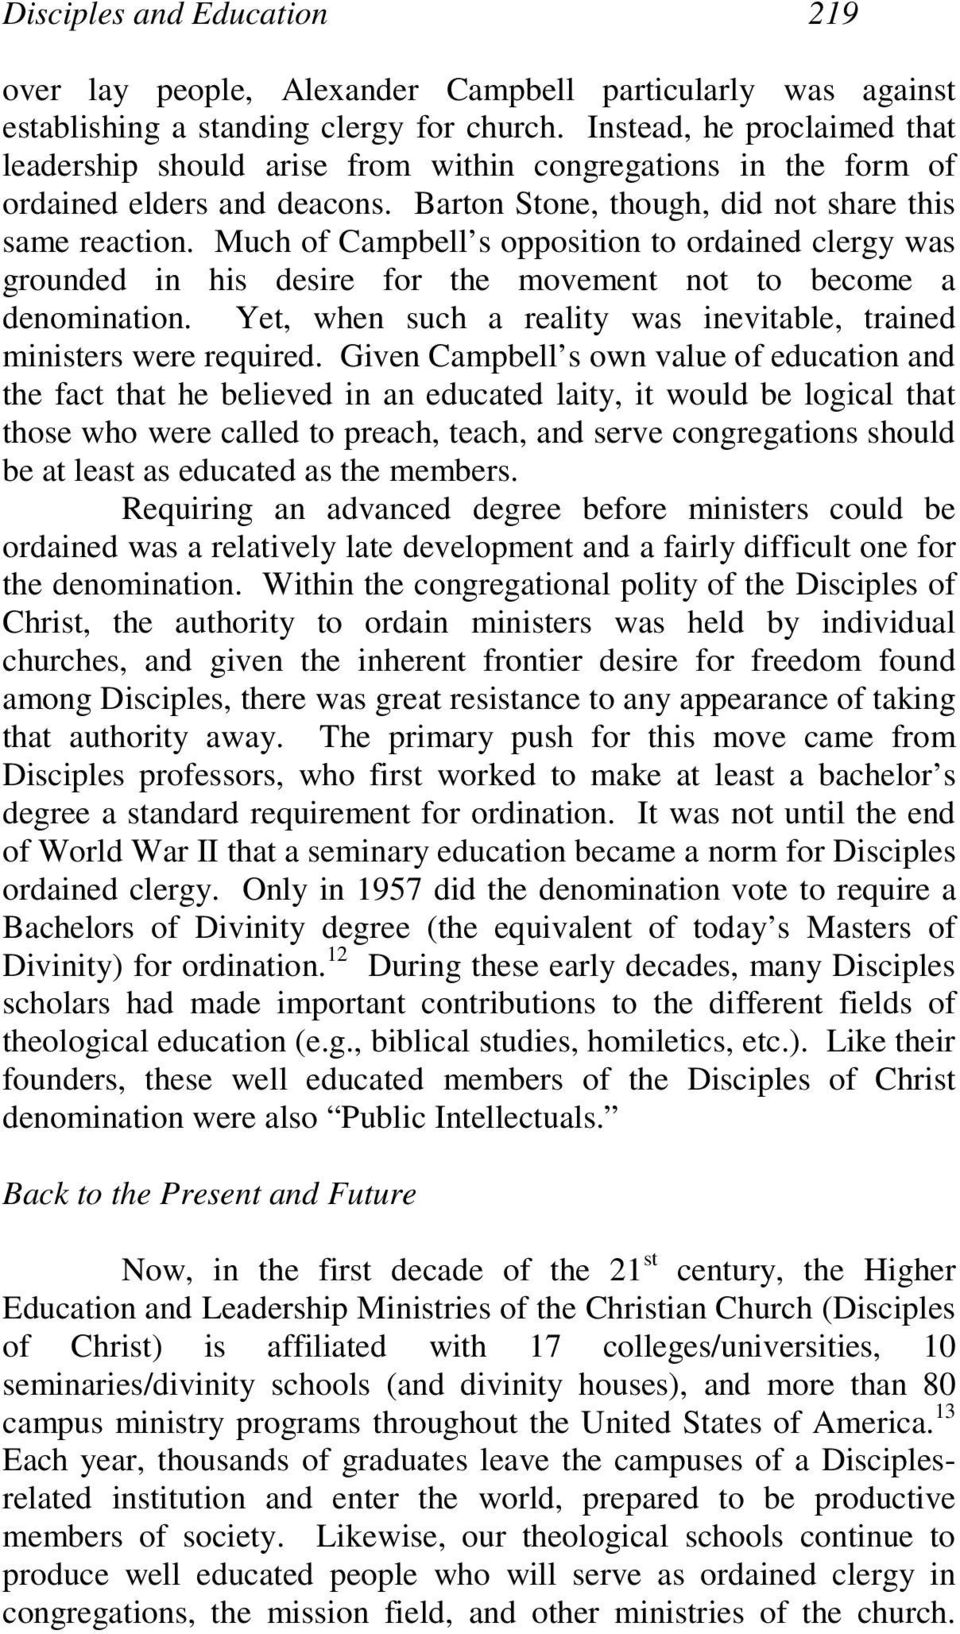 Much of Campbell s opposition to ordained clergy was grounded in his desire for the movement not to become a denomination. Yet, when such a reality was inevitable, trained ministers were required.